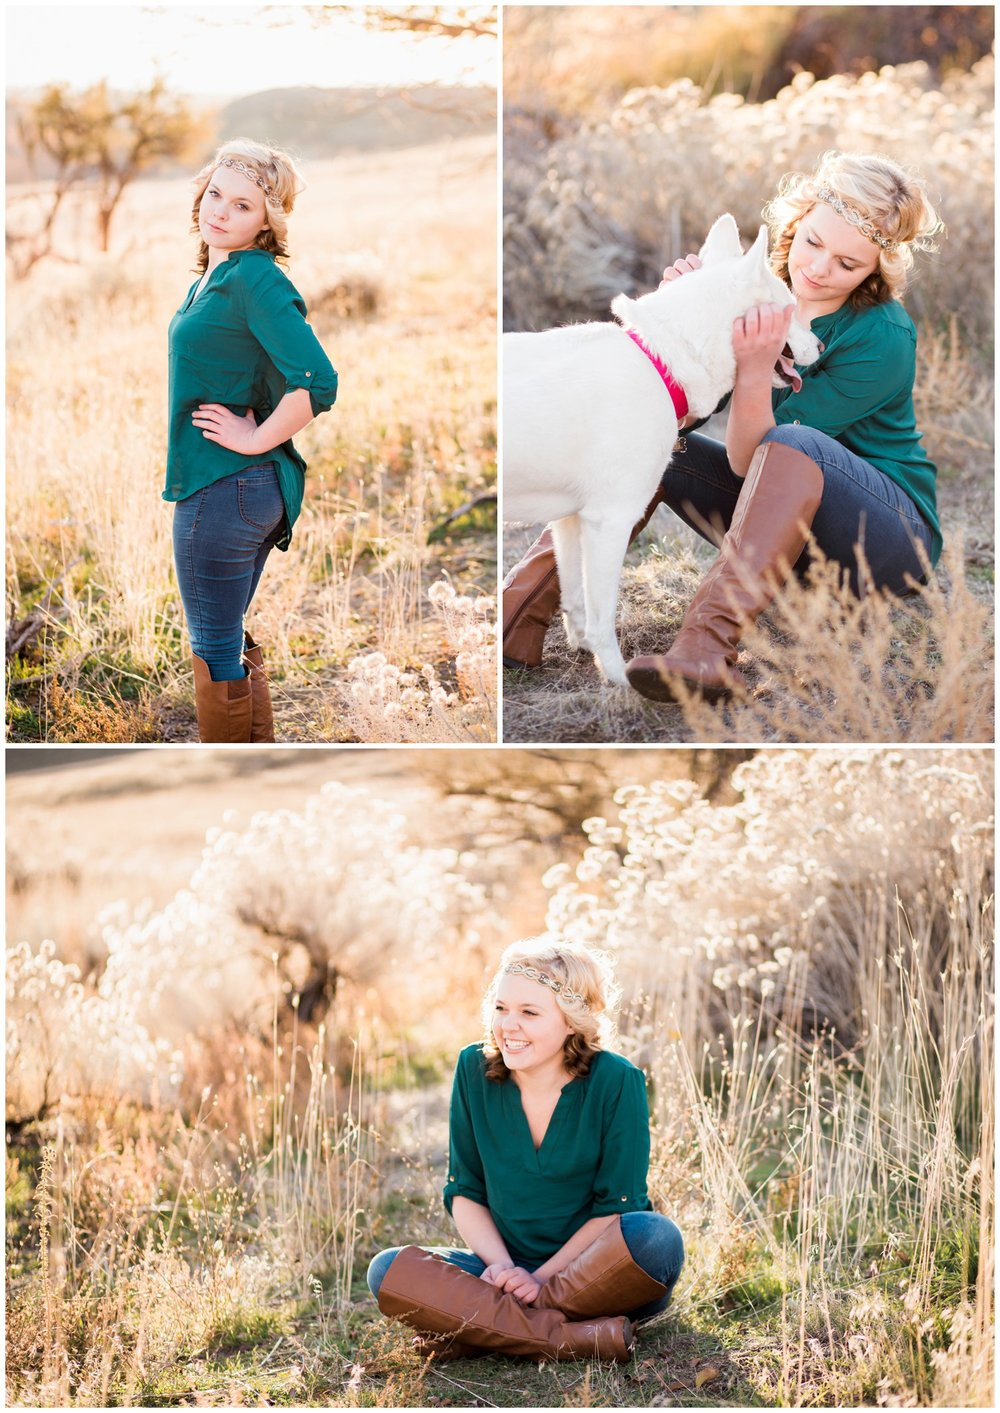 McKenna Rachelle Photography photographs a high school senior girl and her dog in the Boise Foothills.